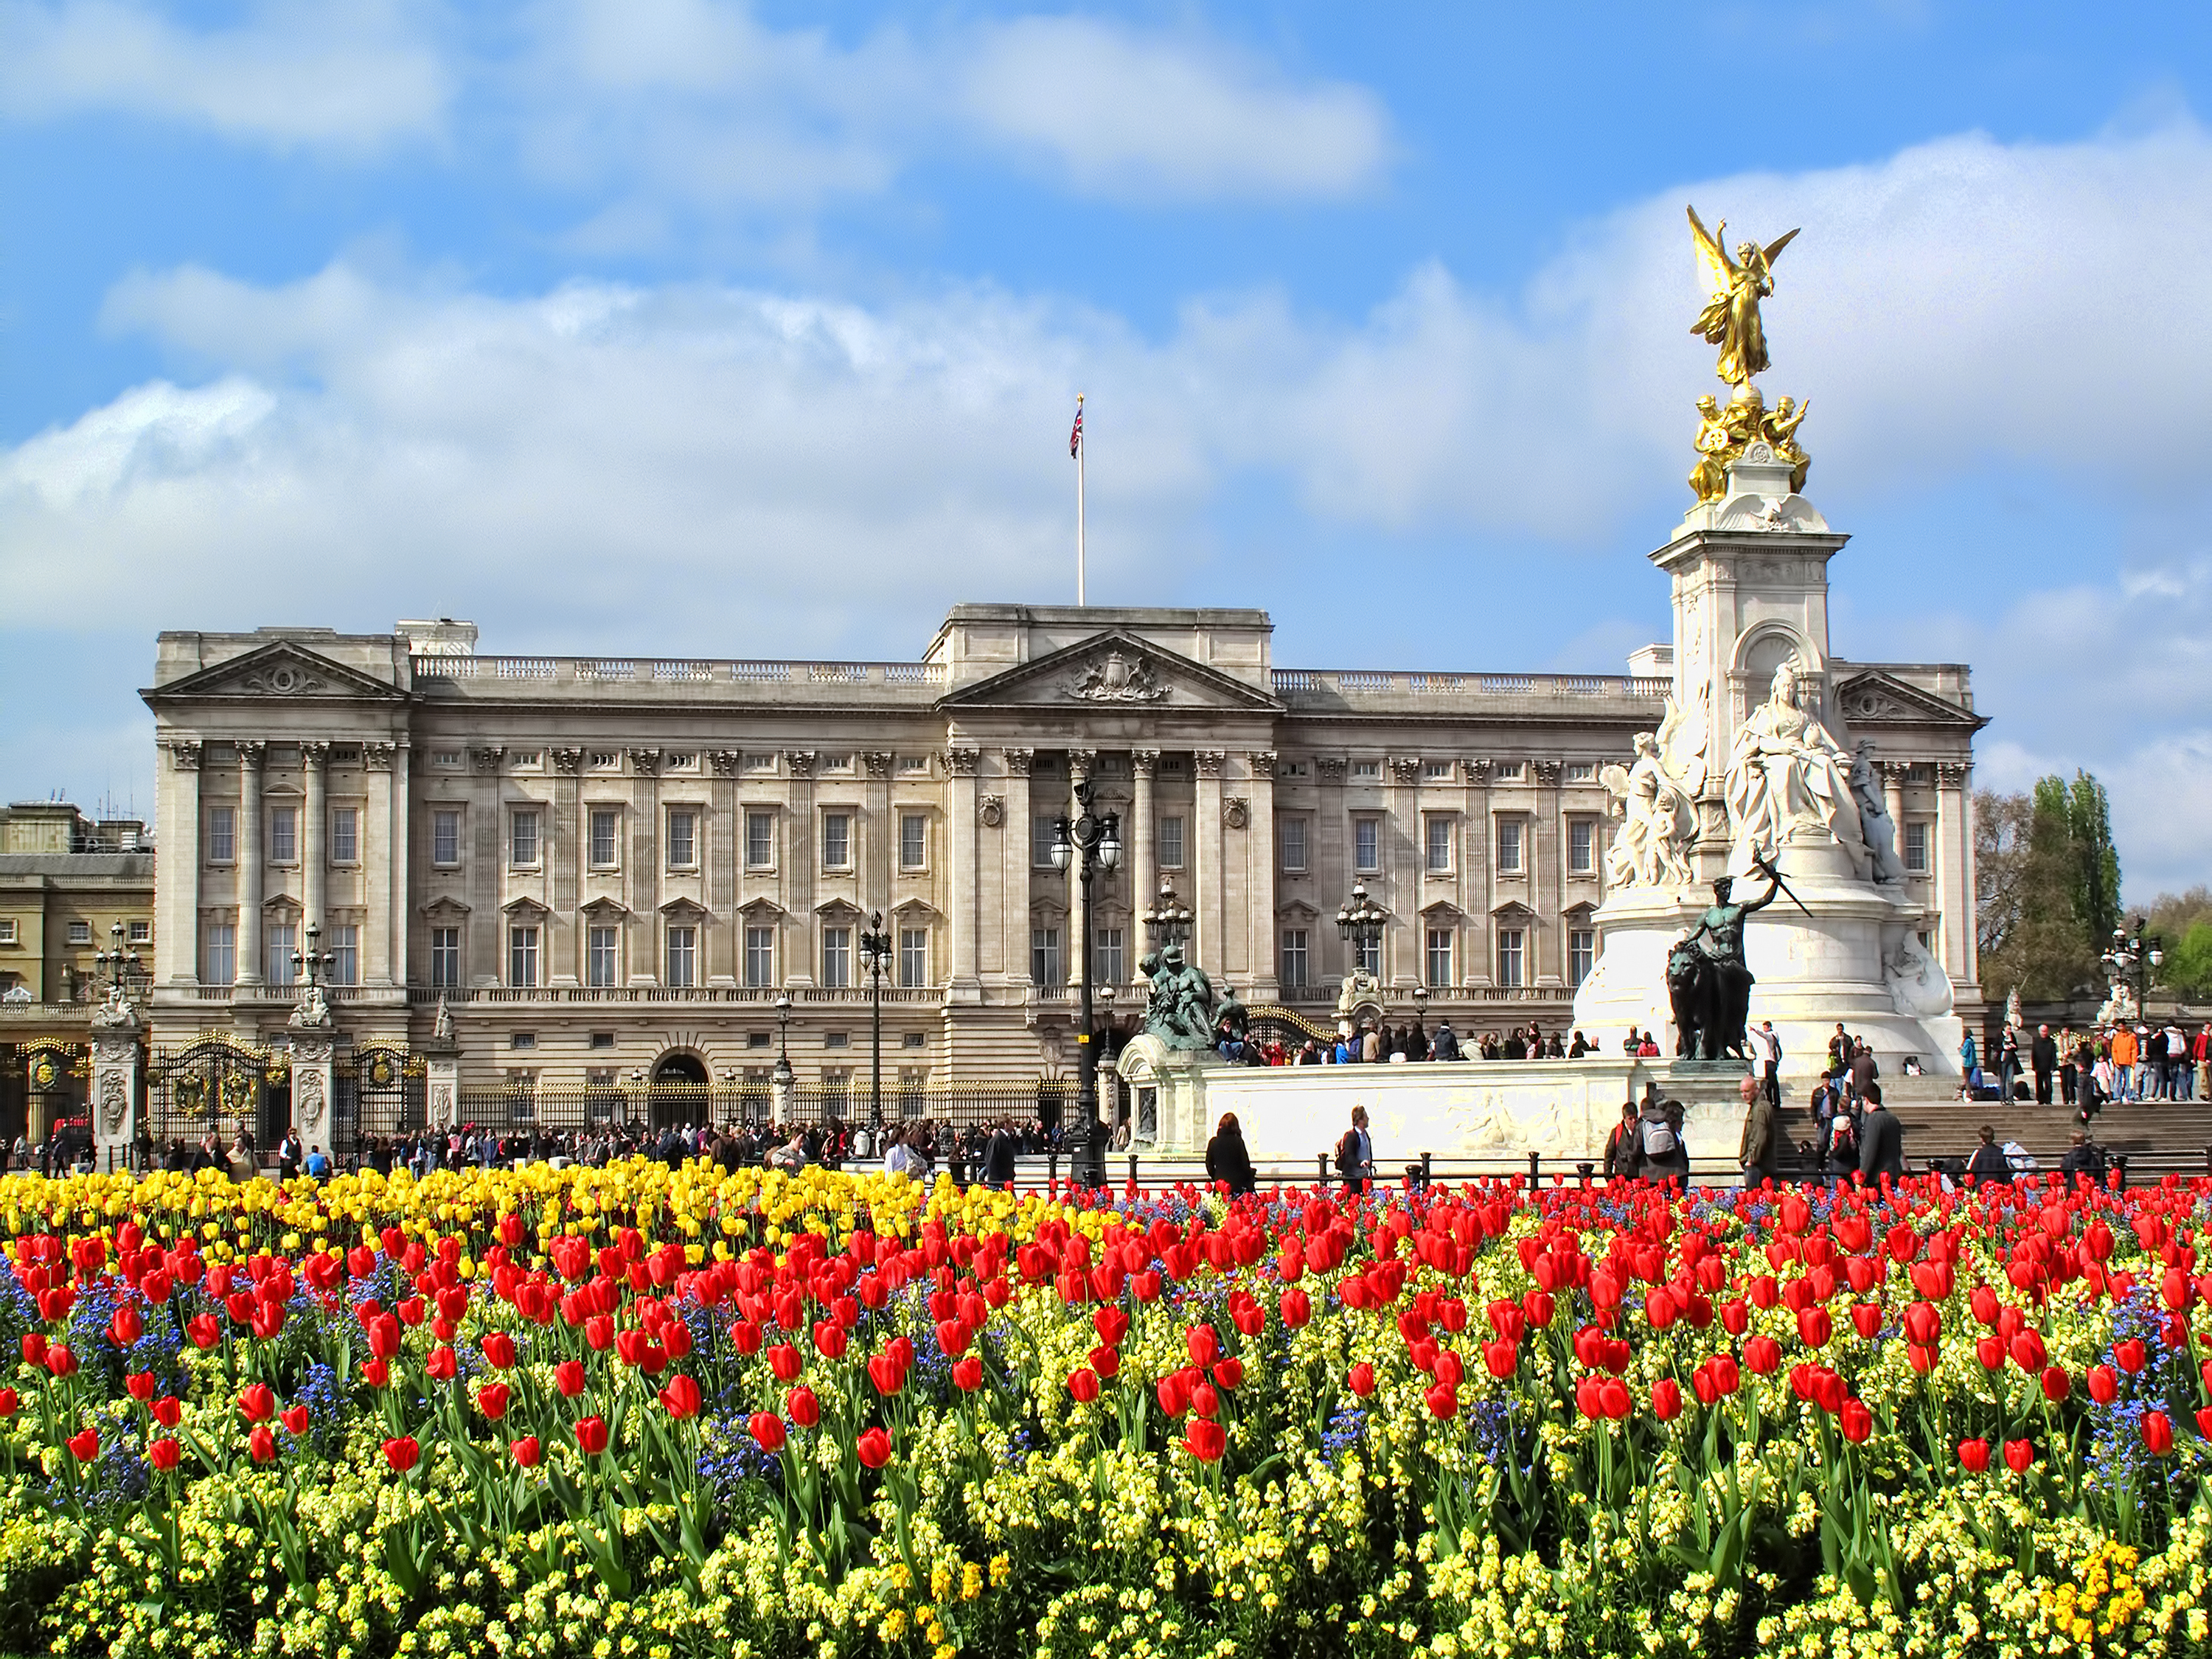 London, UK, April 19, 2009 : Buckingham Palace at the end of The Mall is one of the countries most populat tourist attraction